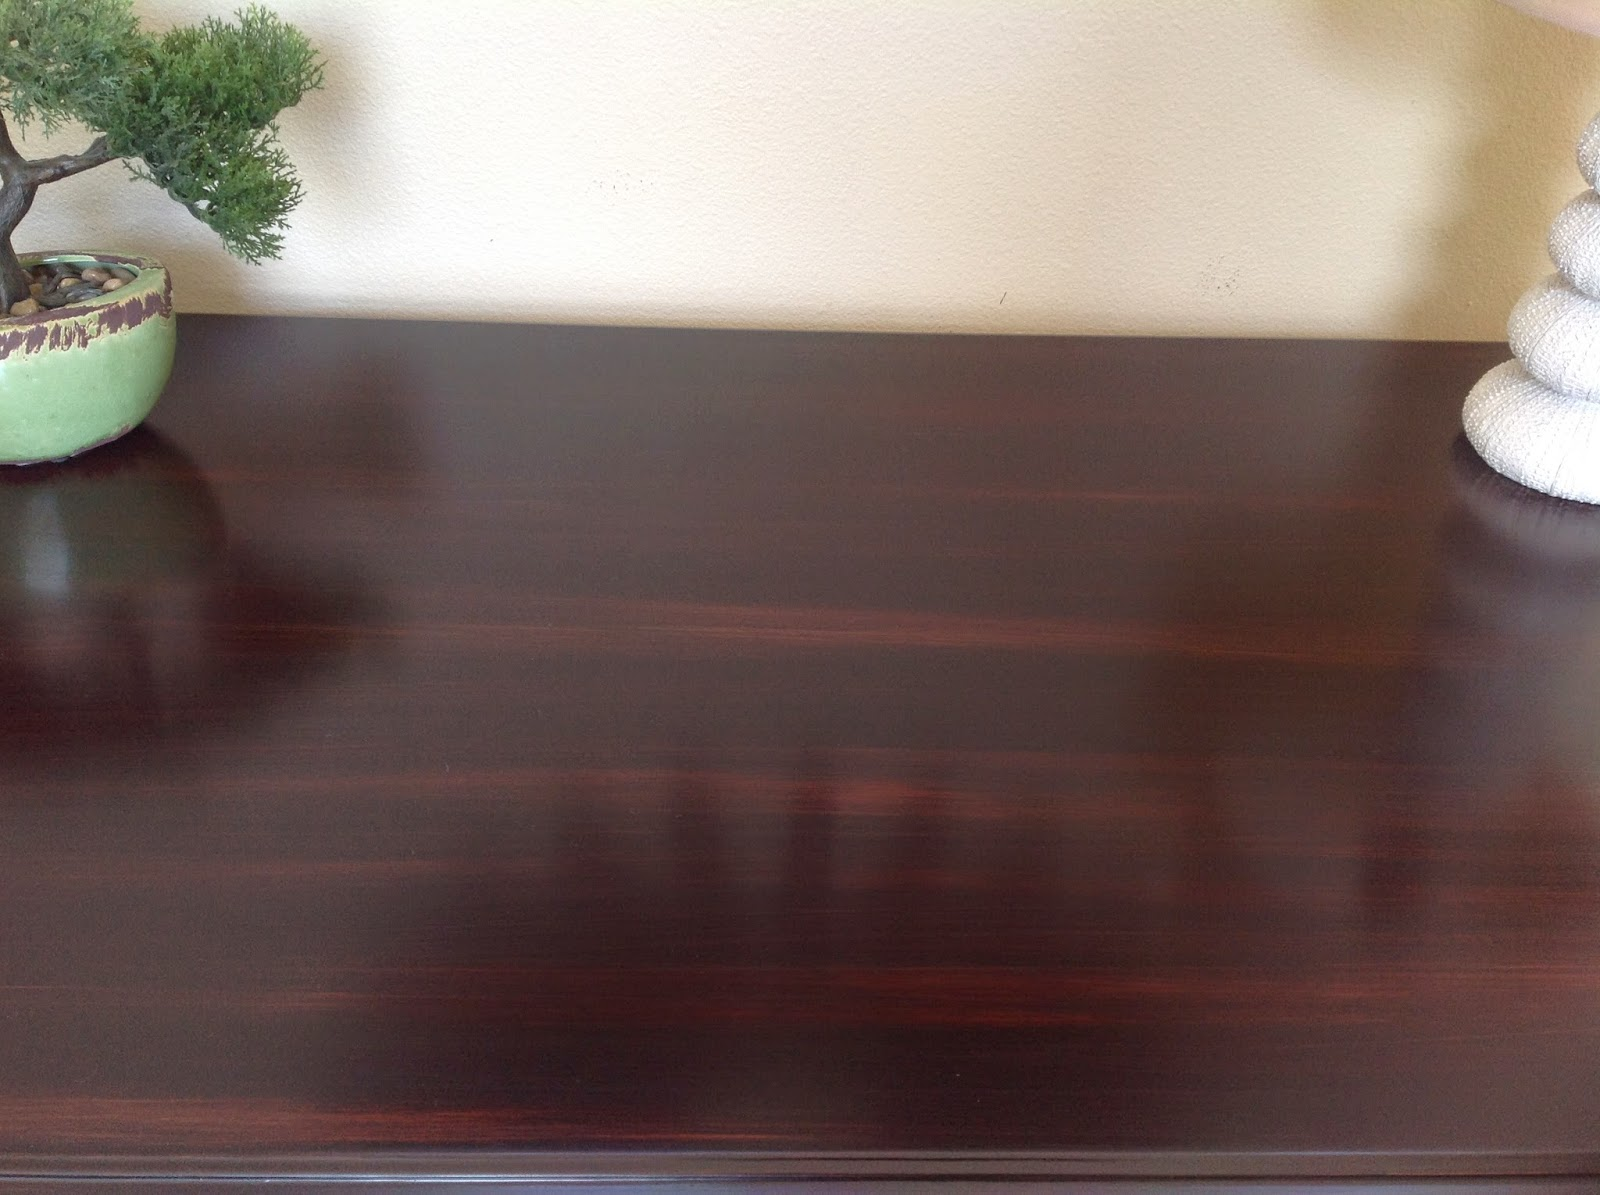 Just wipe on 1-2 thin coats and add beauty to your furniture projects